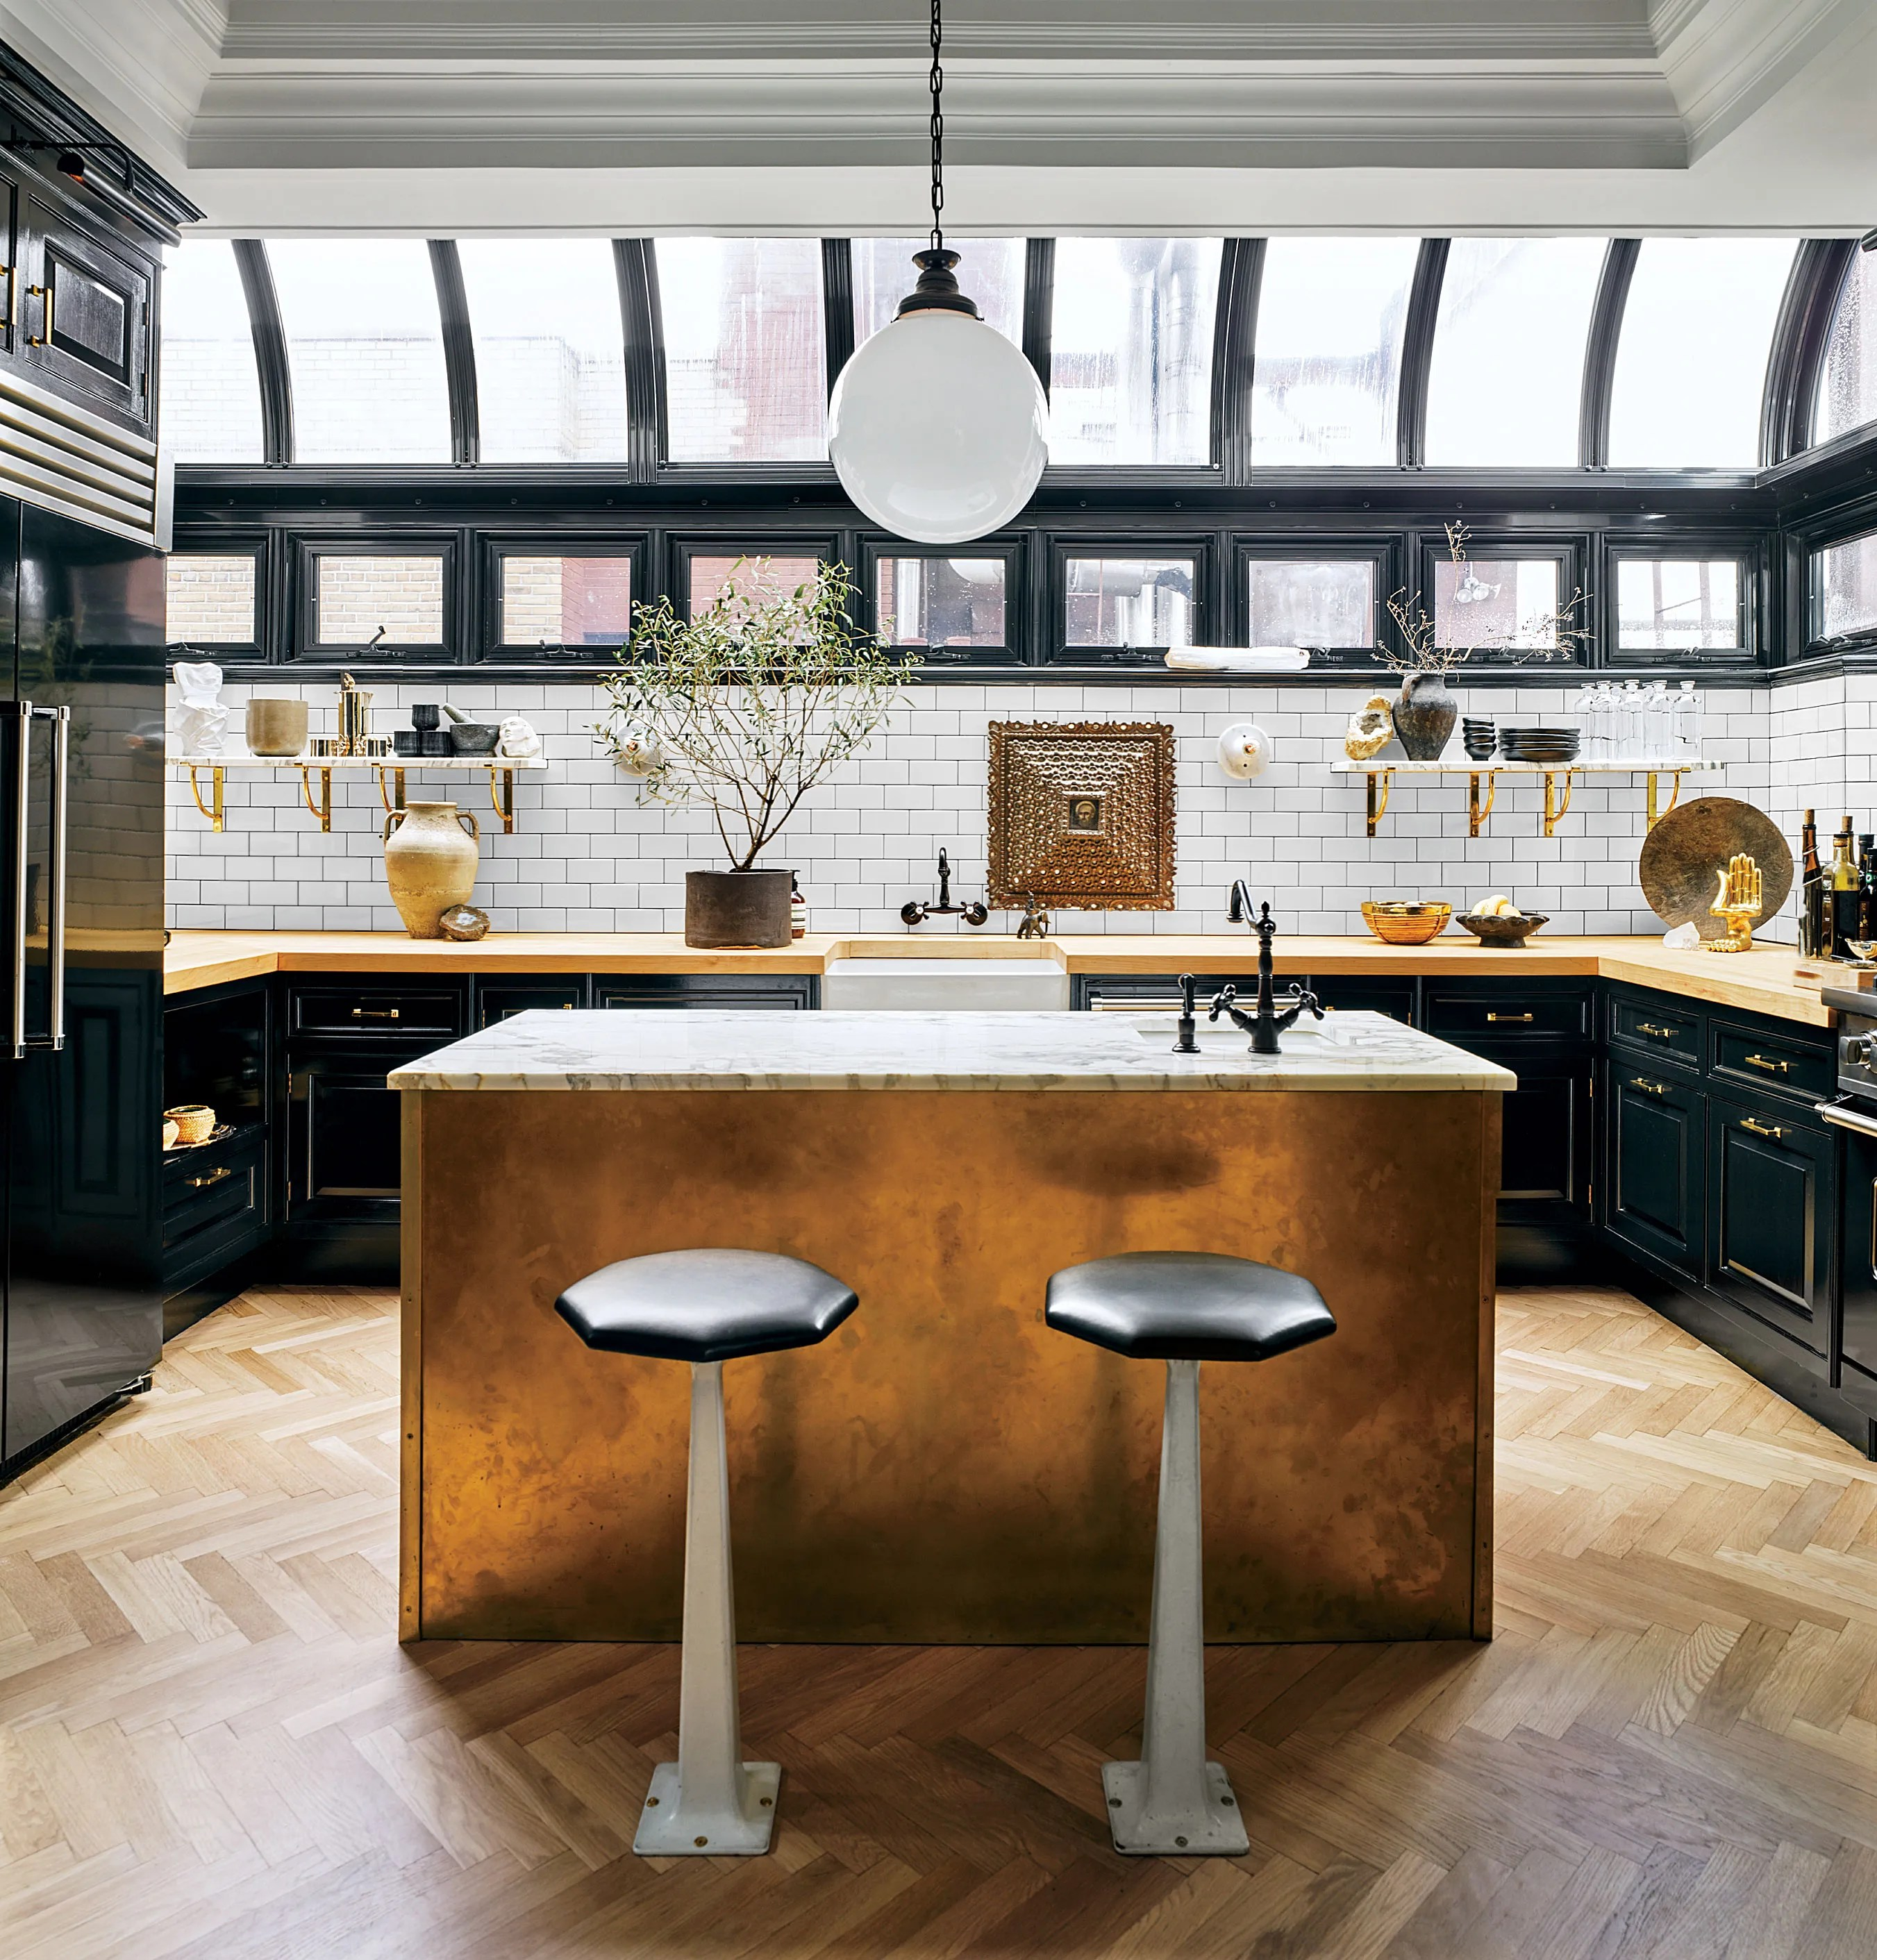 Best Kitchen Gallery: These 20 Black Kitchens Make A Stylish Impact Photos Architectural of Kitchen Cabinets Made In Mexico on rachelxblog.com